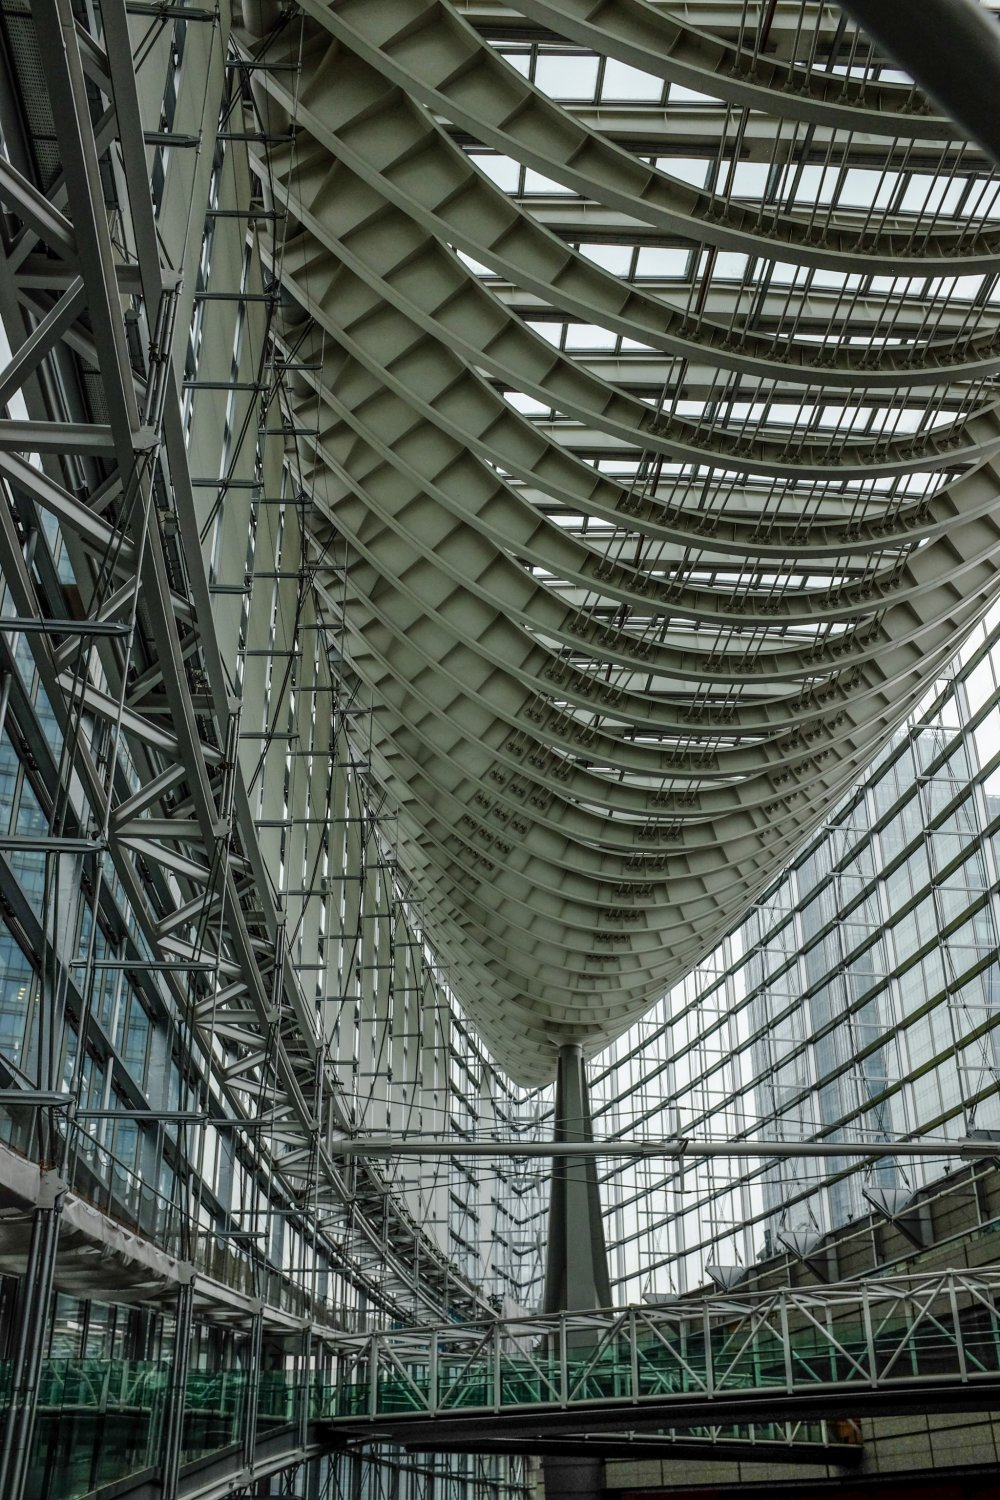 The spectacular boat shaped roof is a sight to behold as you enter the building